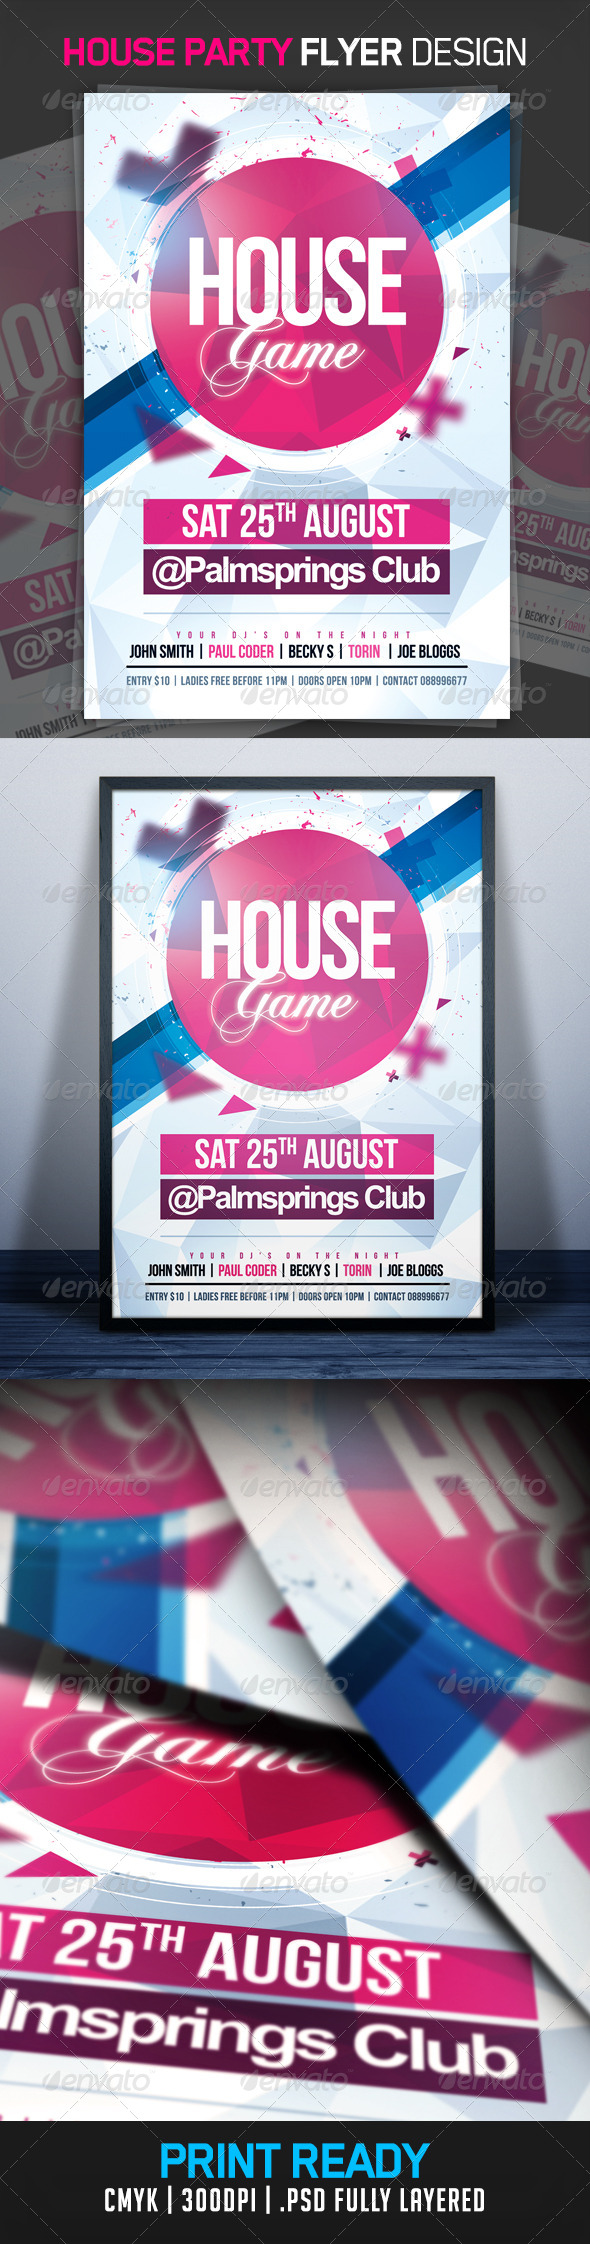 House Game Party Flyer - Clubs & Parties Events